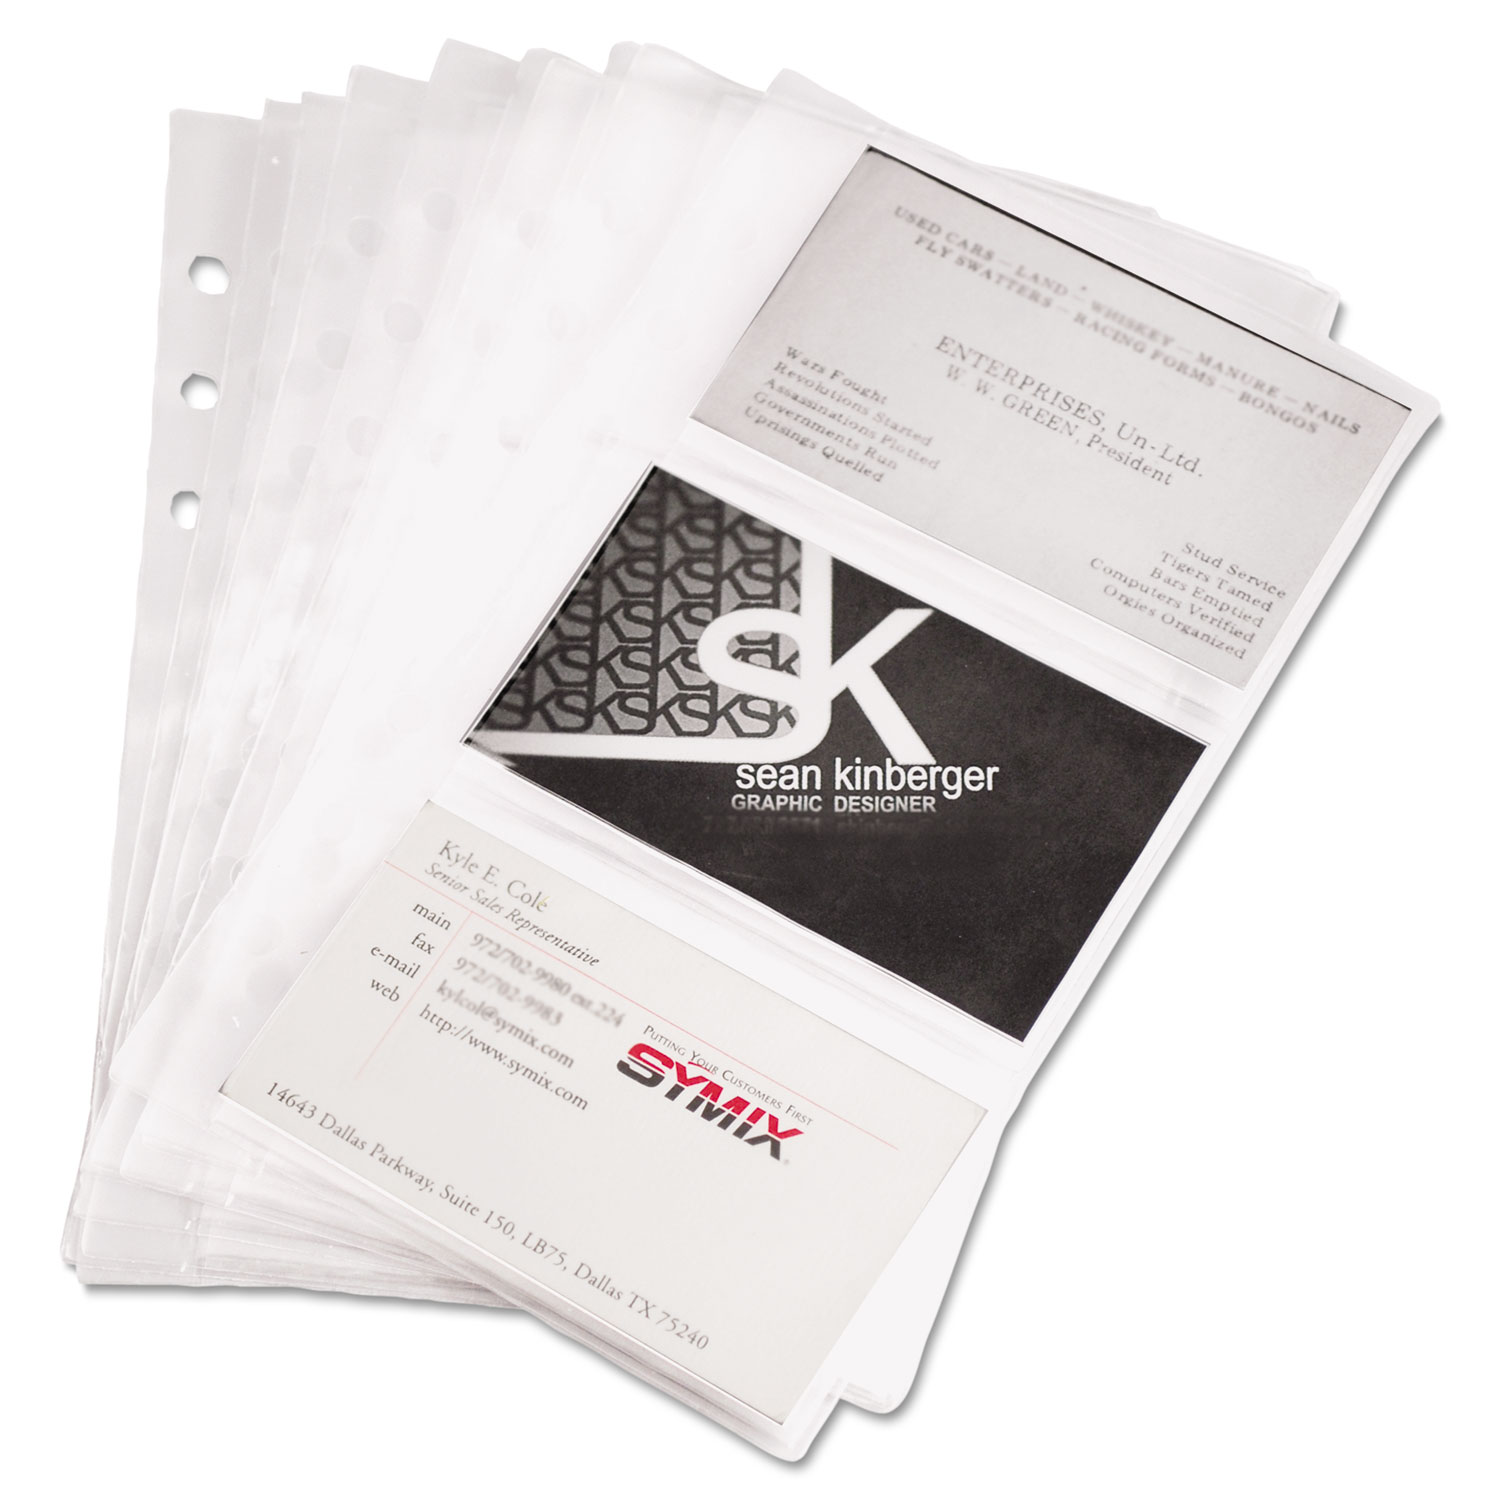 Refill sheets for 4 14 x 7 14 business card binders by samsill sam81079 thumbnail 1 reheart Gallery